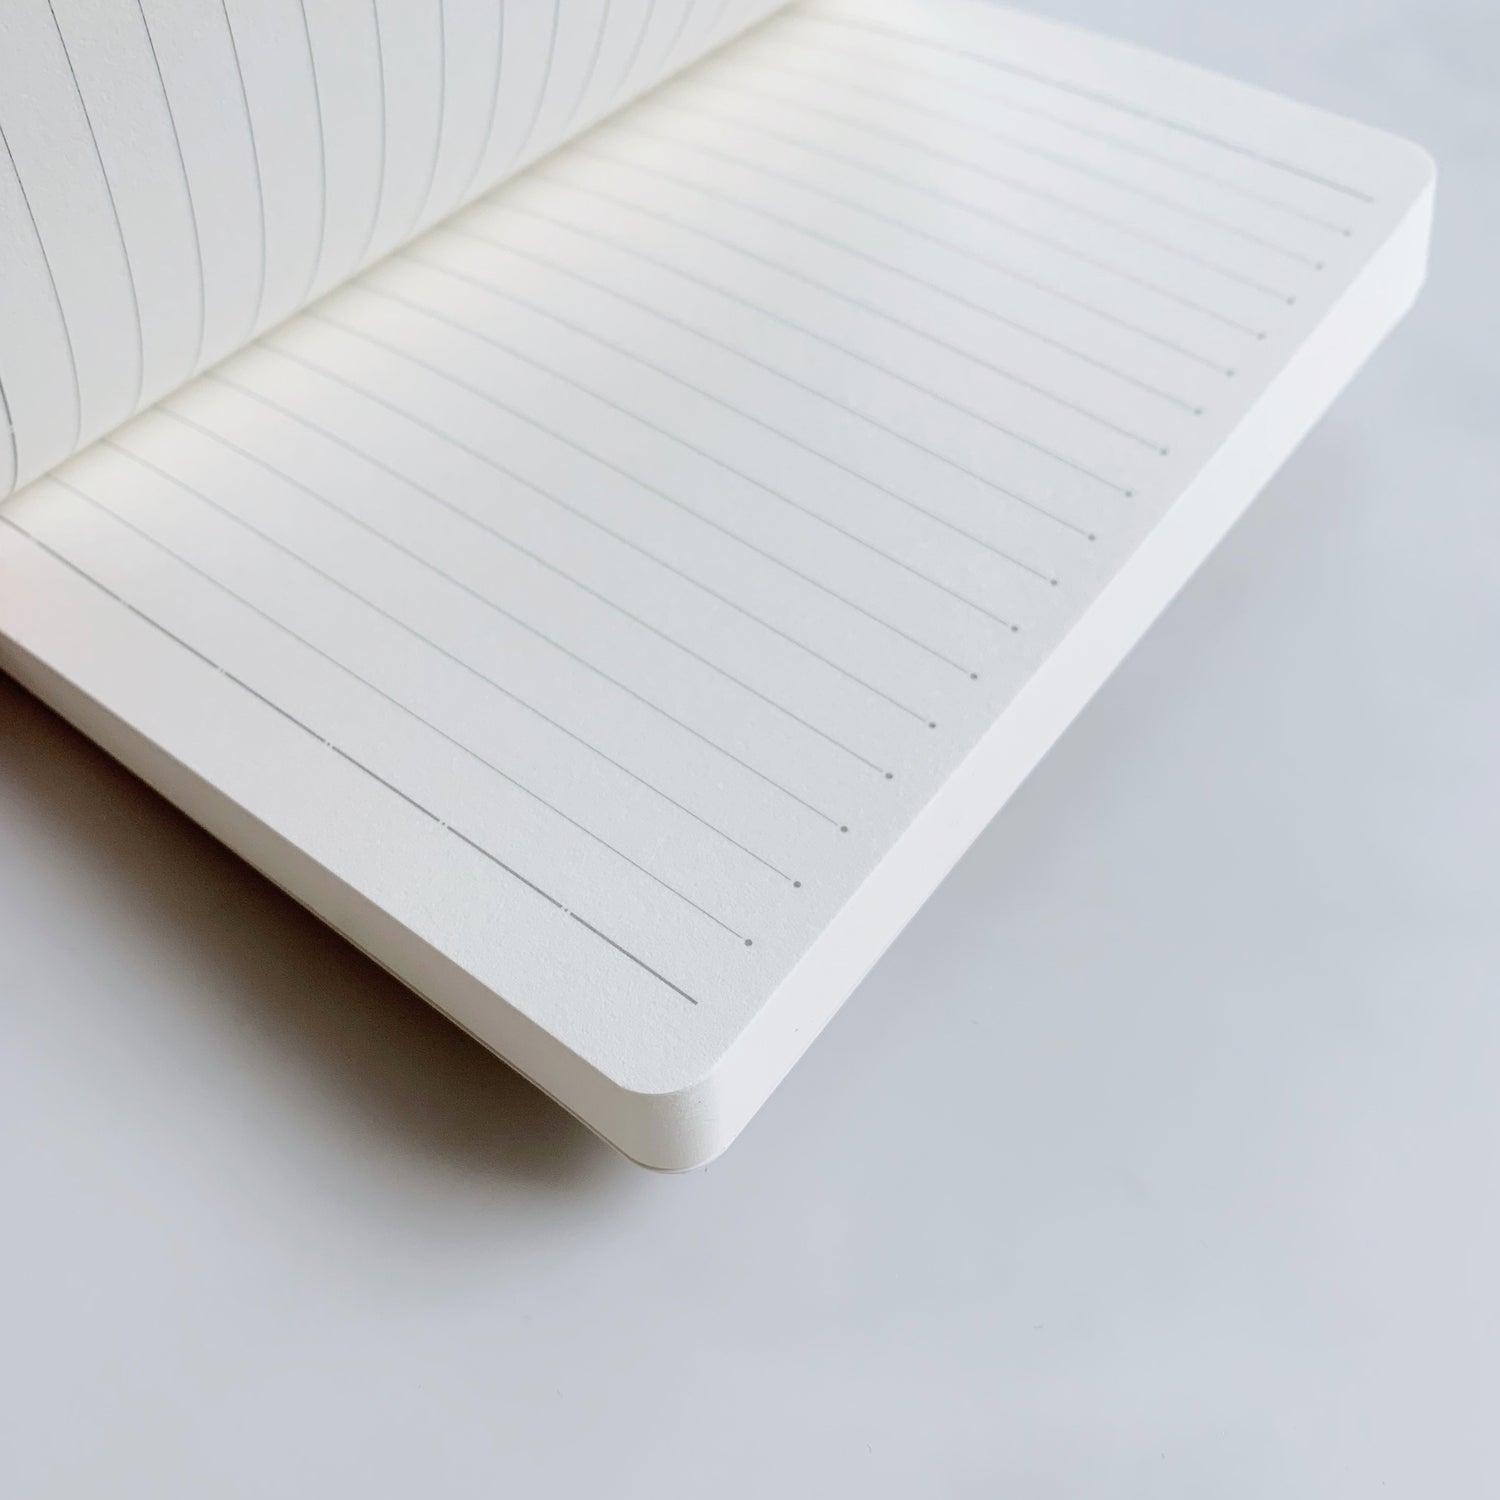 Image of April Showers A6 Notebook